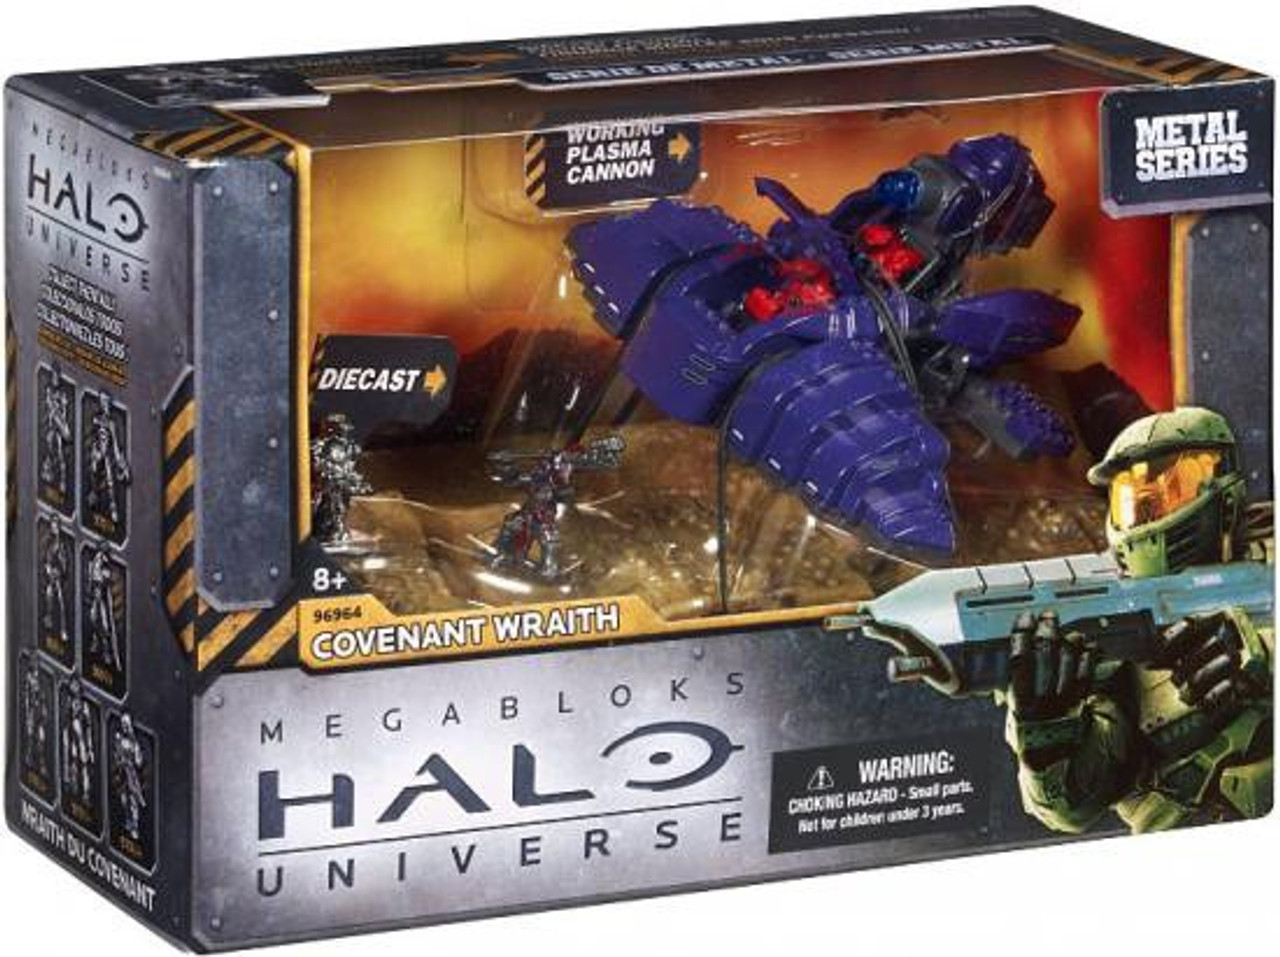 Mega Bloks Halo Metal Series Covenant Wraith Set #96964